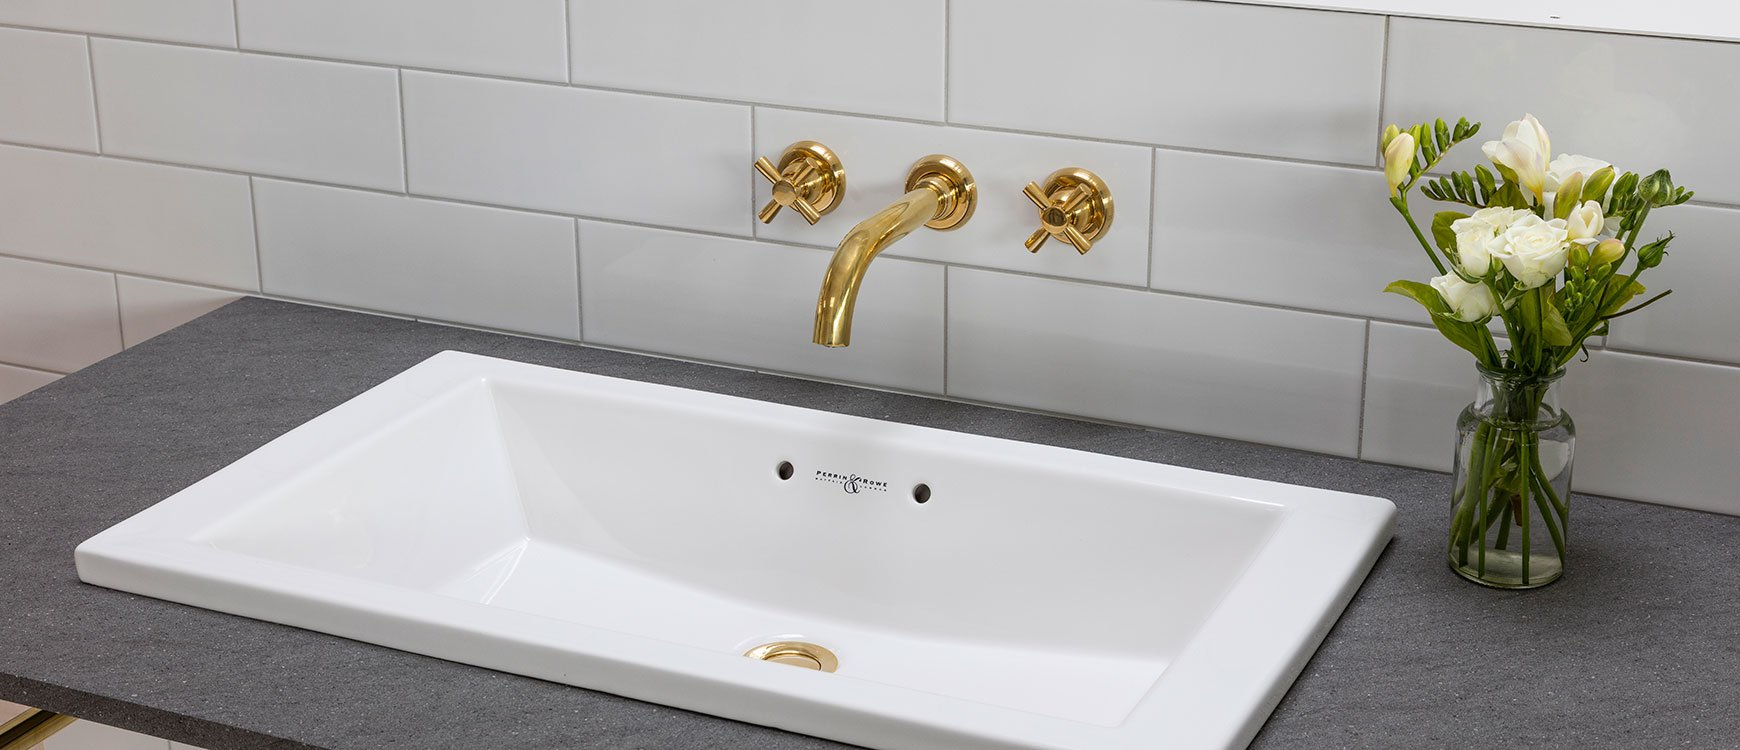 Bathroom Taps best quality basin taps | buy bathroom taps in australia online